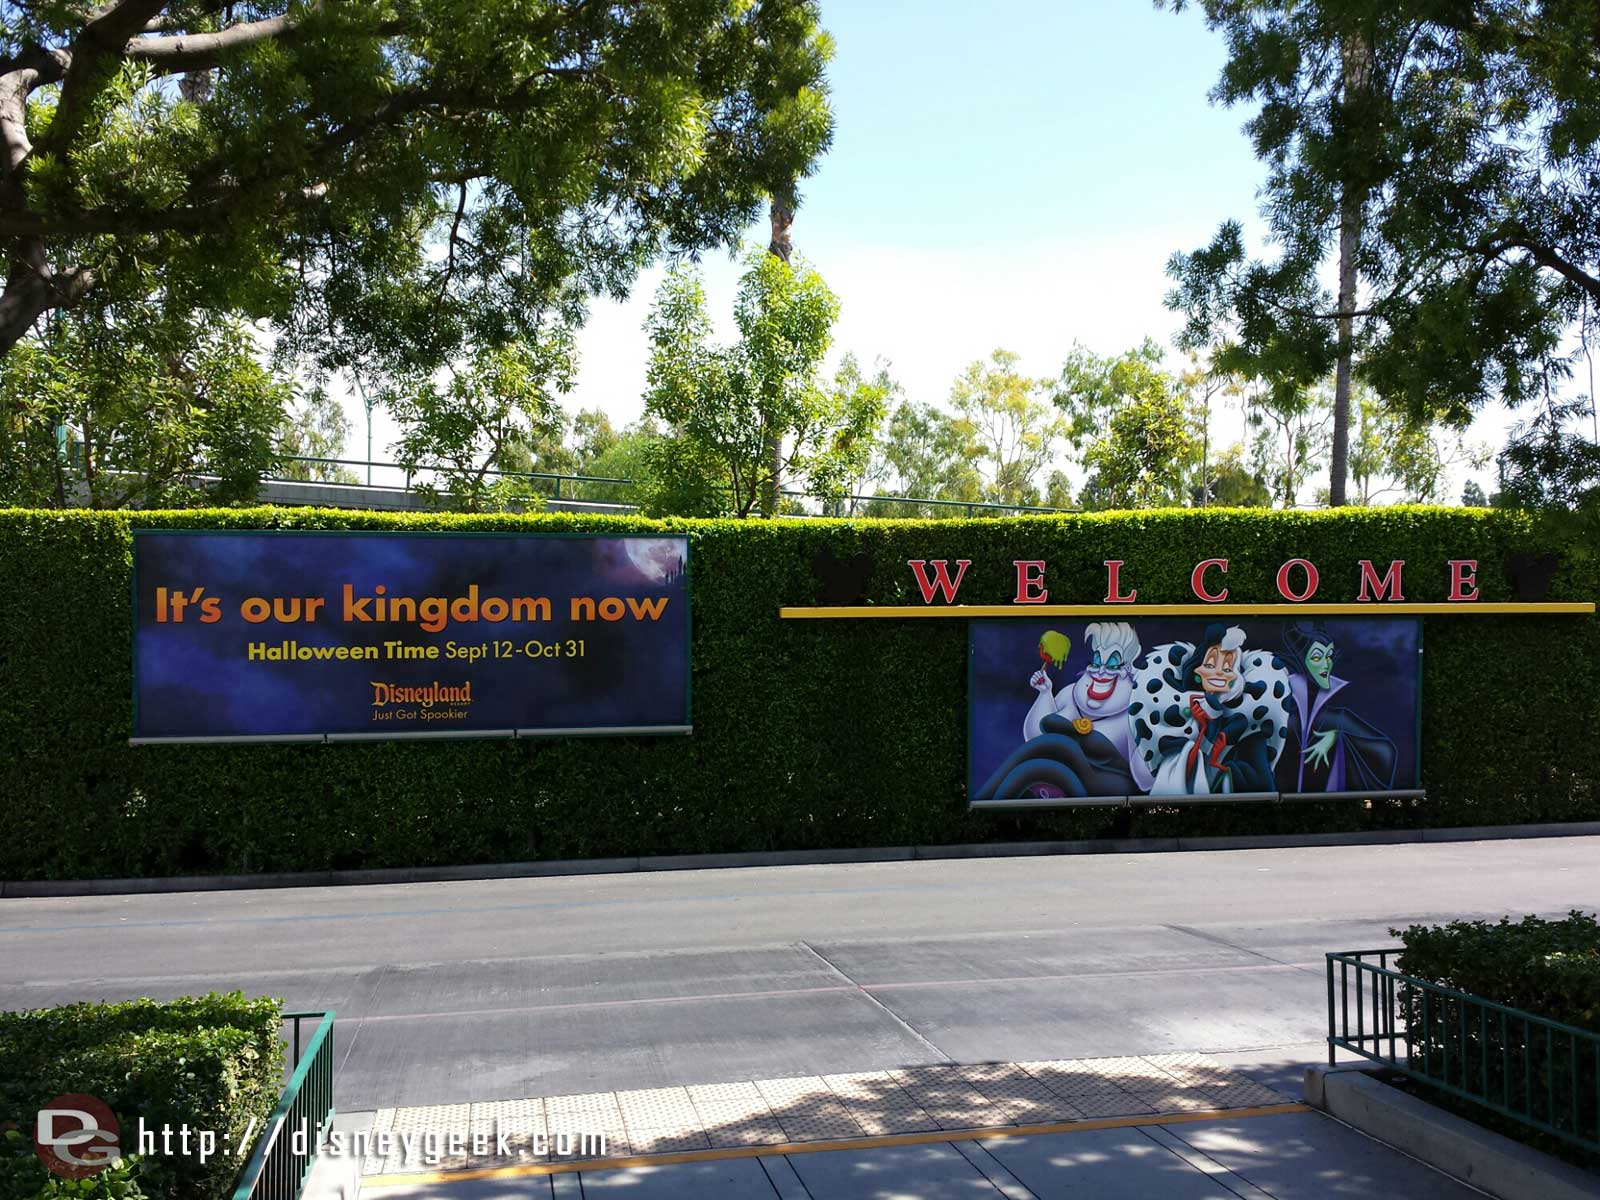 Halloweentime starts today #Disneyland. Here are two tram stop billboards